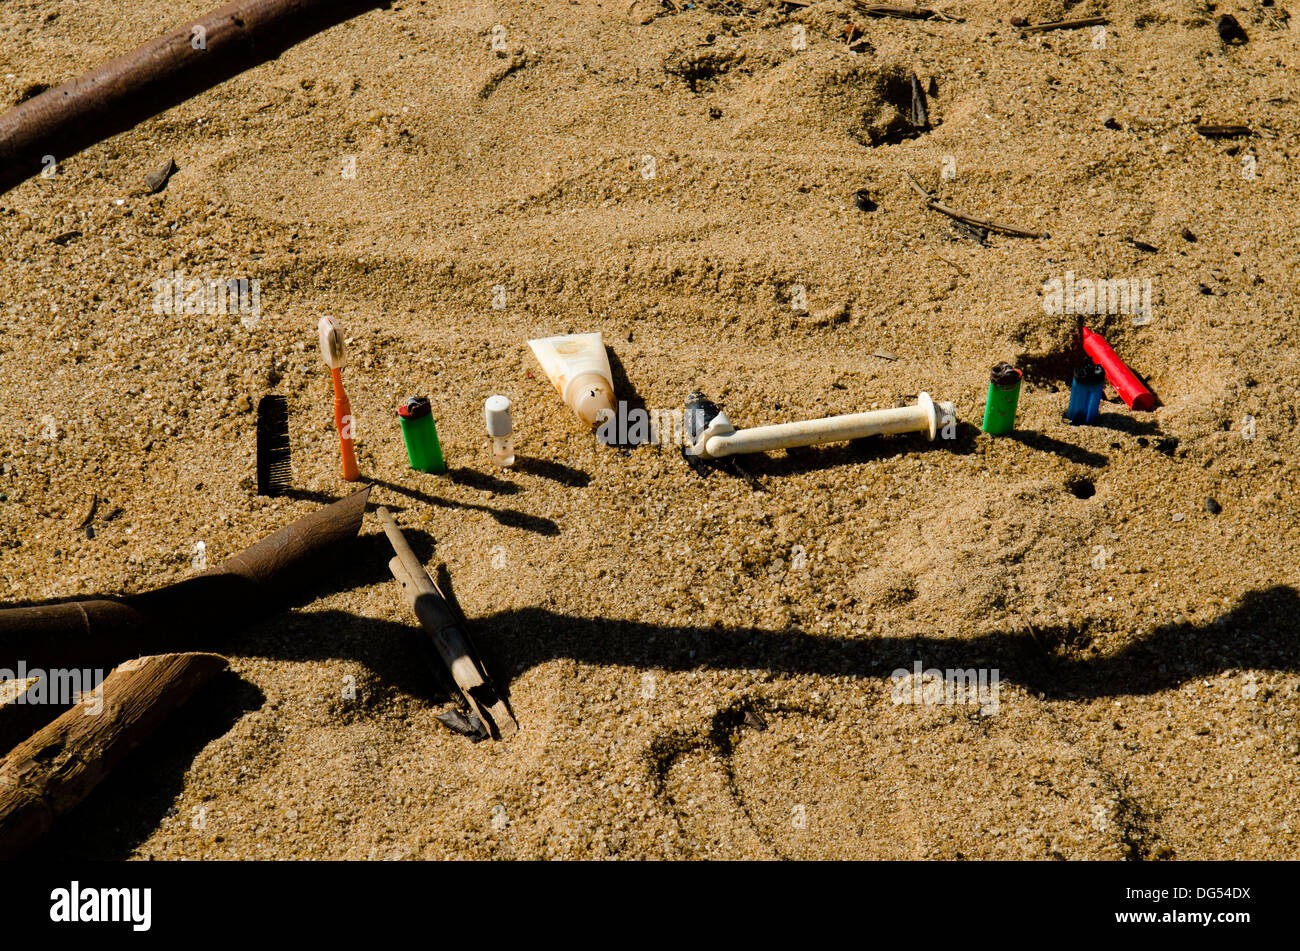 plastic debris at the beach.   Regencia, Espirito Santo state, Brazil - Stock Image